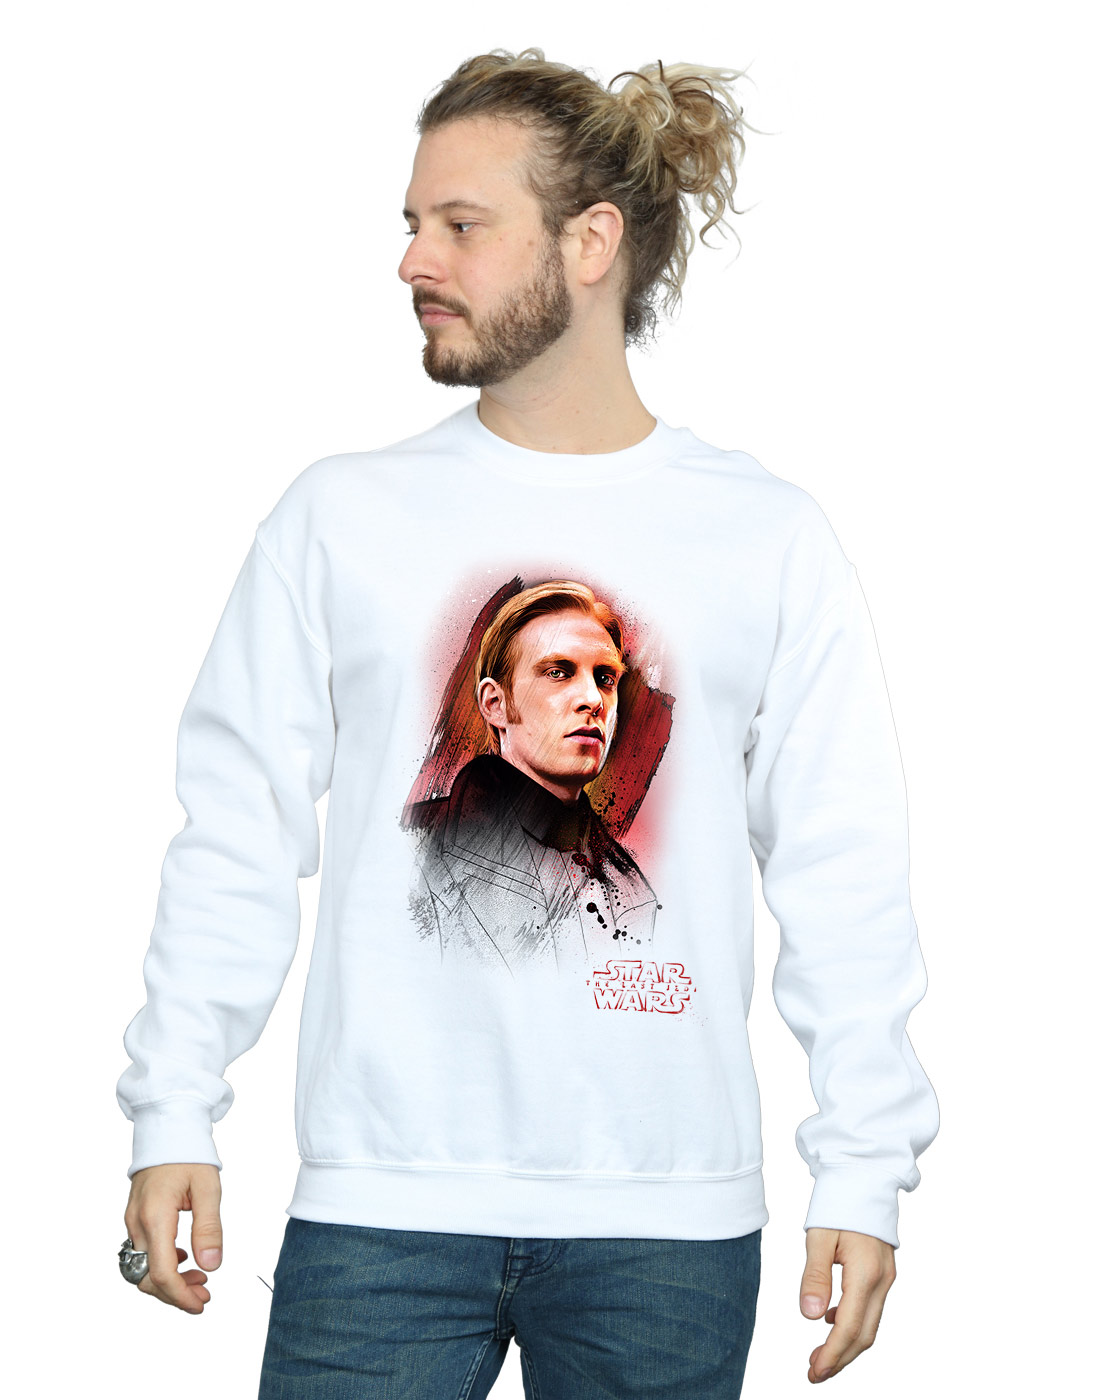 Luke Skywalker Baseball Long Sleeve T-Shirt Officially Licensed The Last Jedi